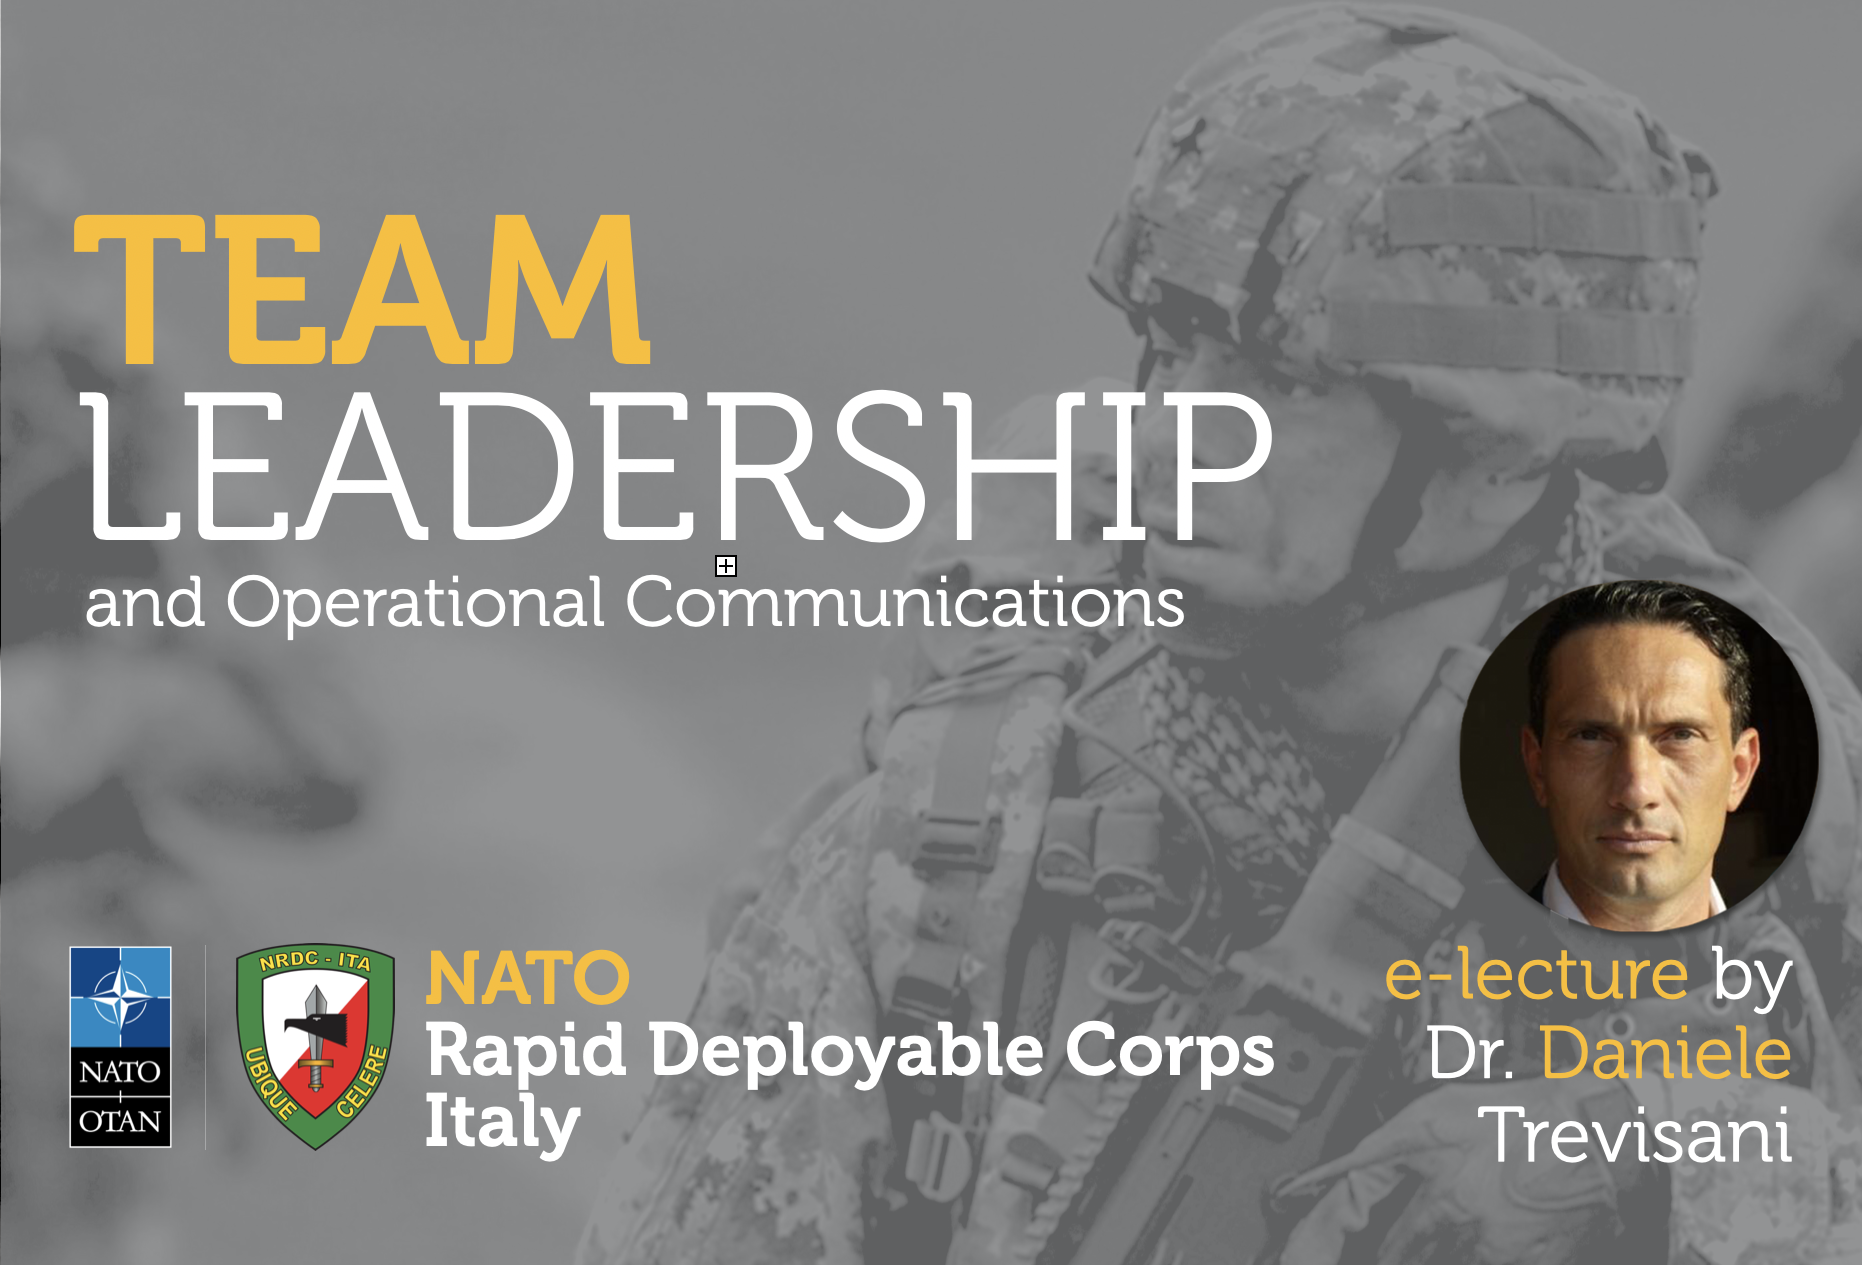 NRDC-ITA continues to deliver training to its personnel via an e-lecture on management and leadership in achieving ones communication goals.